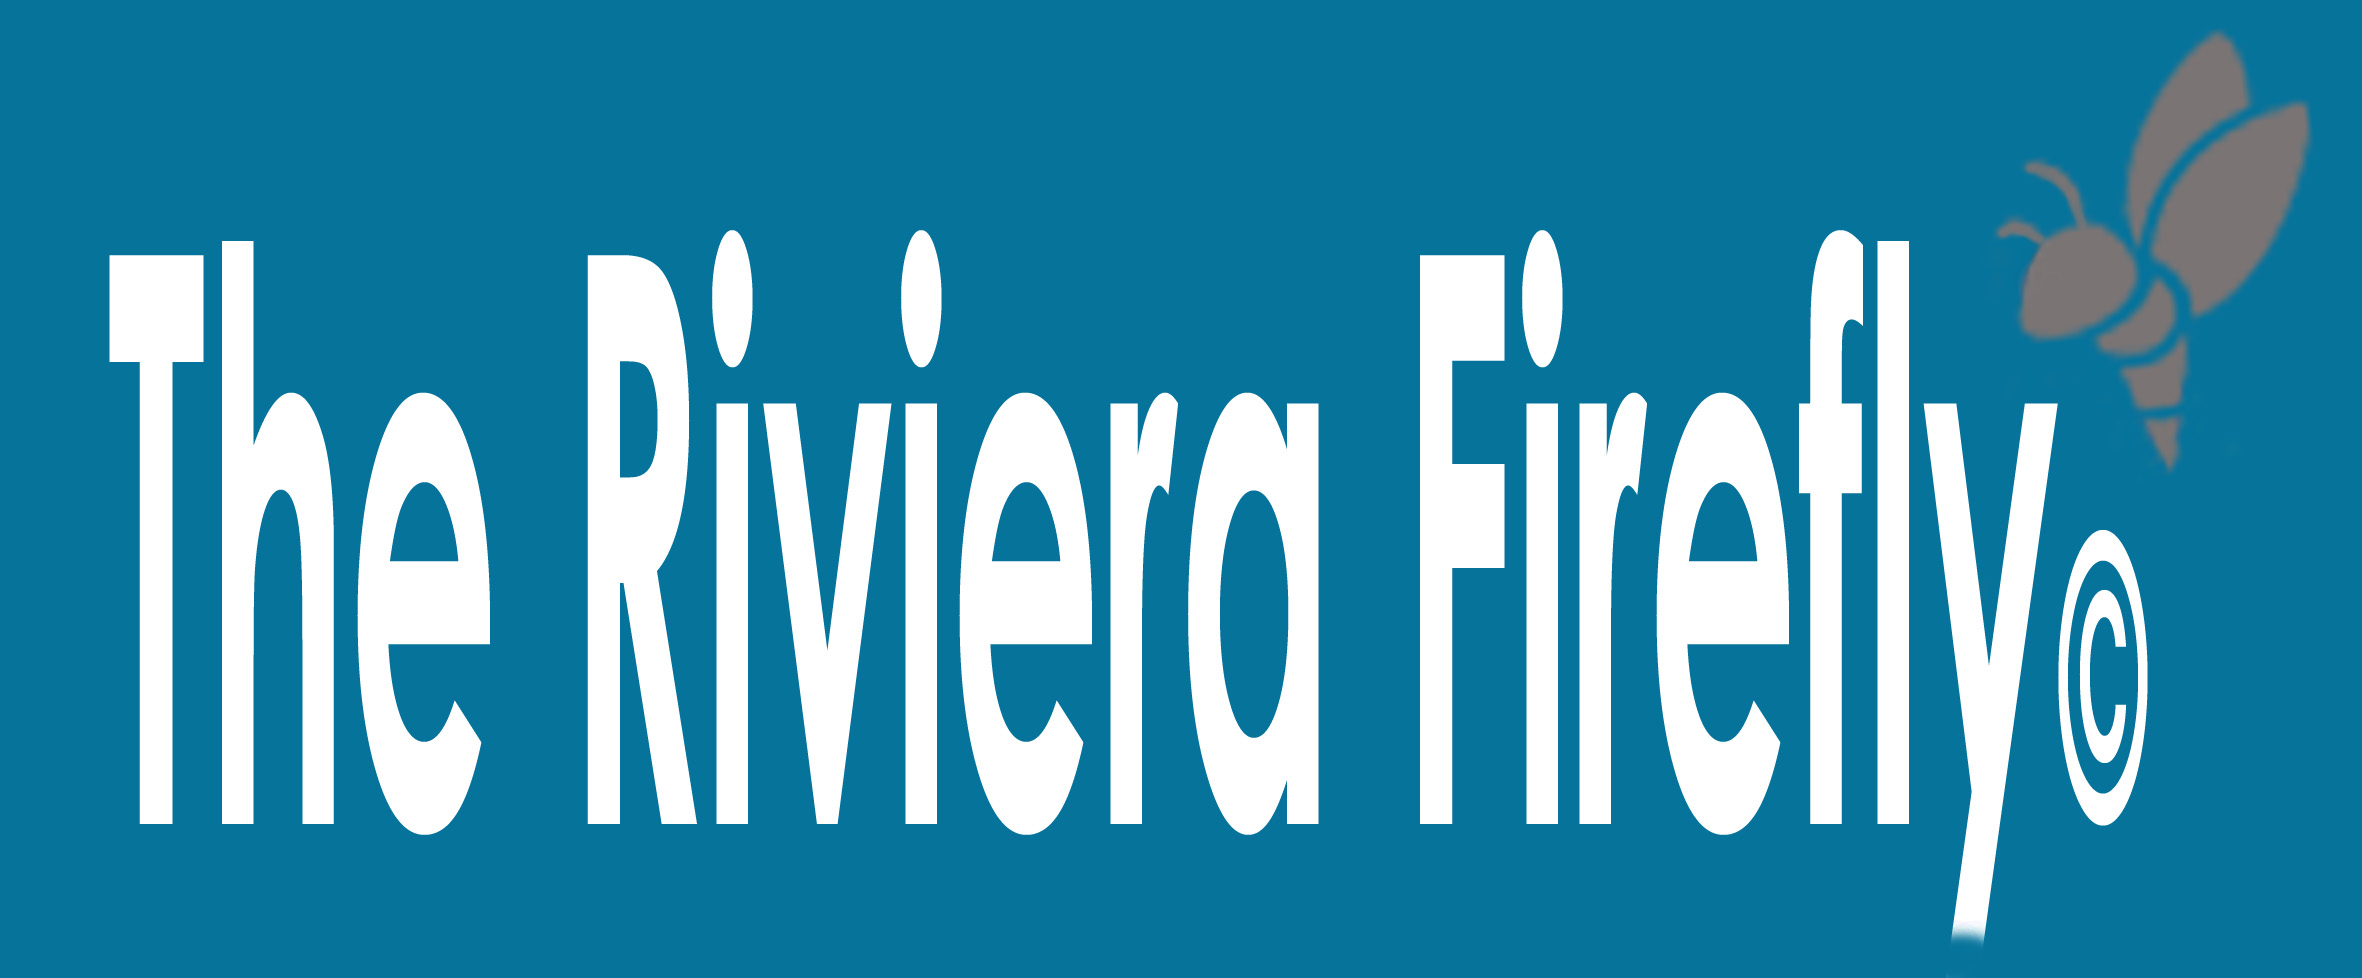 Riviera Firefly Cote d'Azur Living Logo